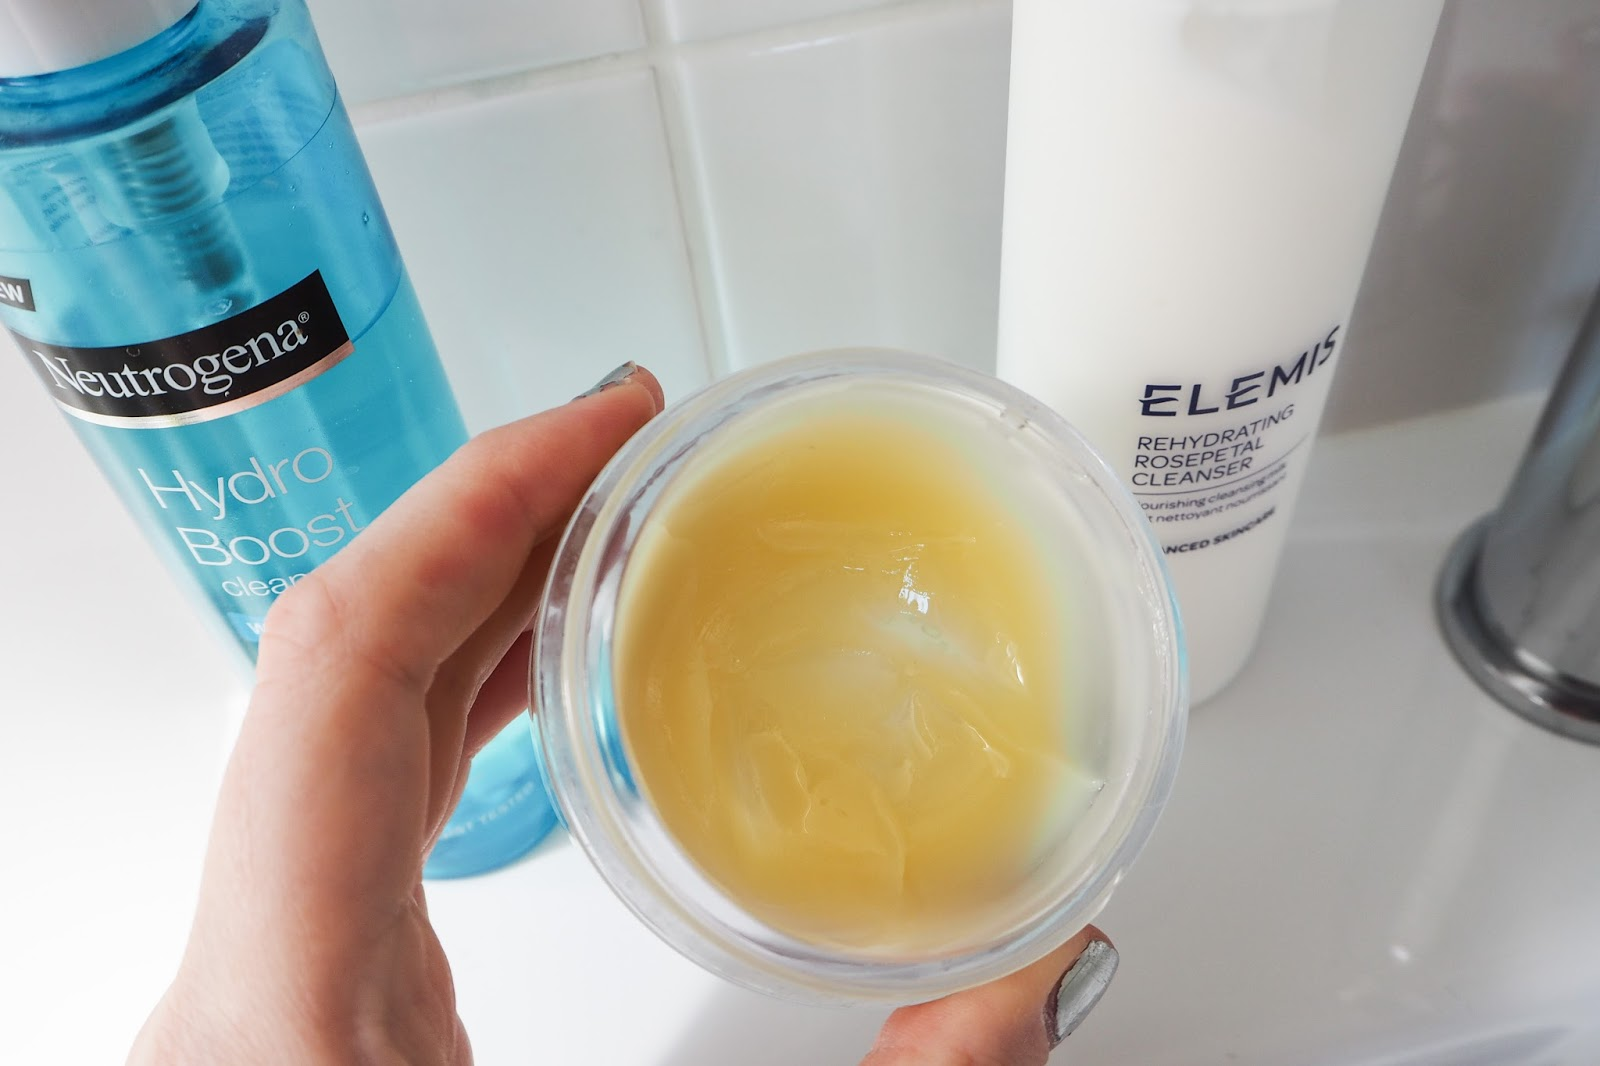 Close up of the Elemis Cleansing Balm to see the texture